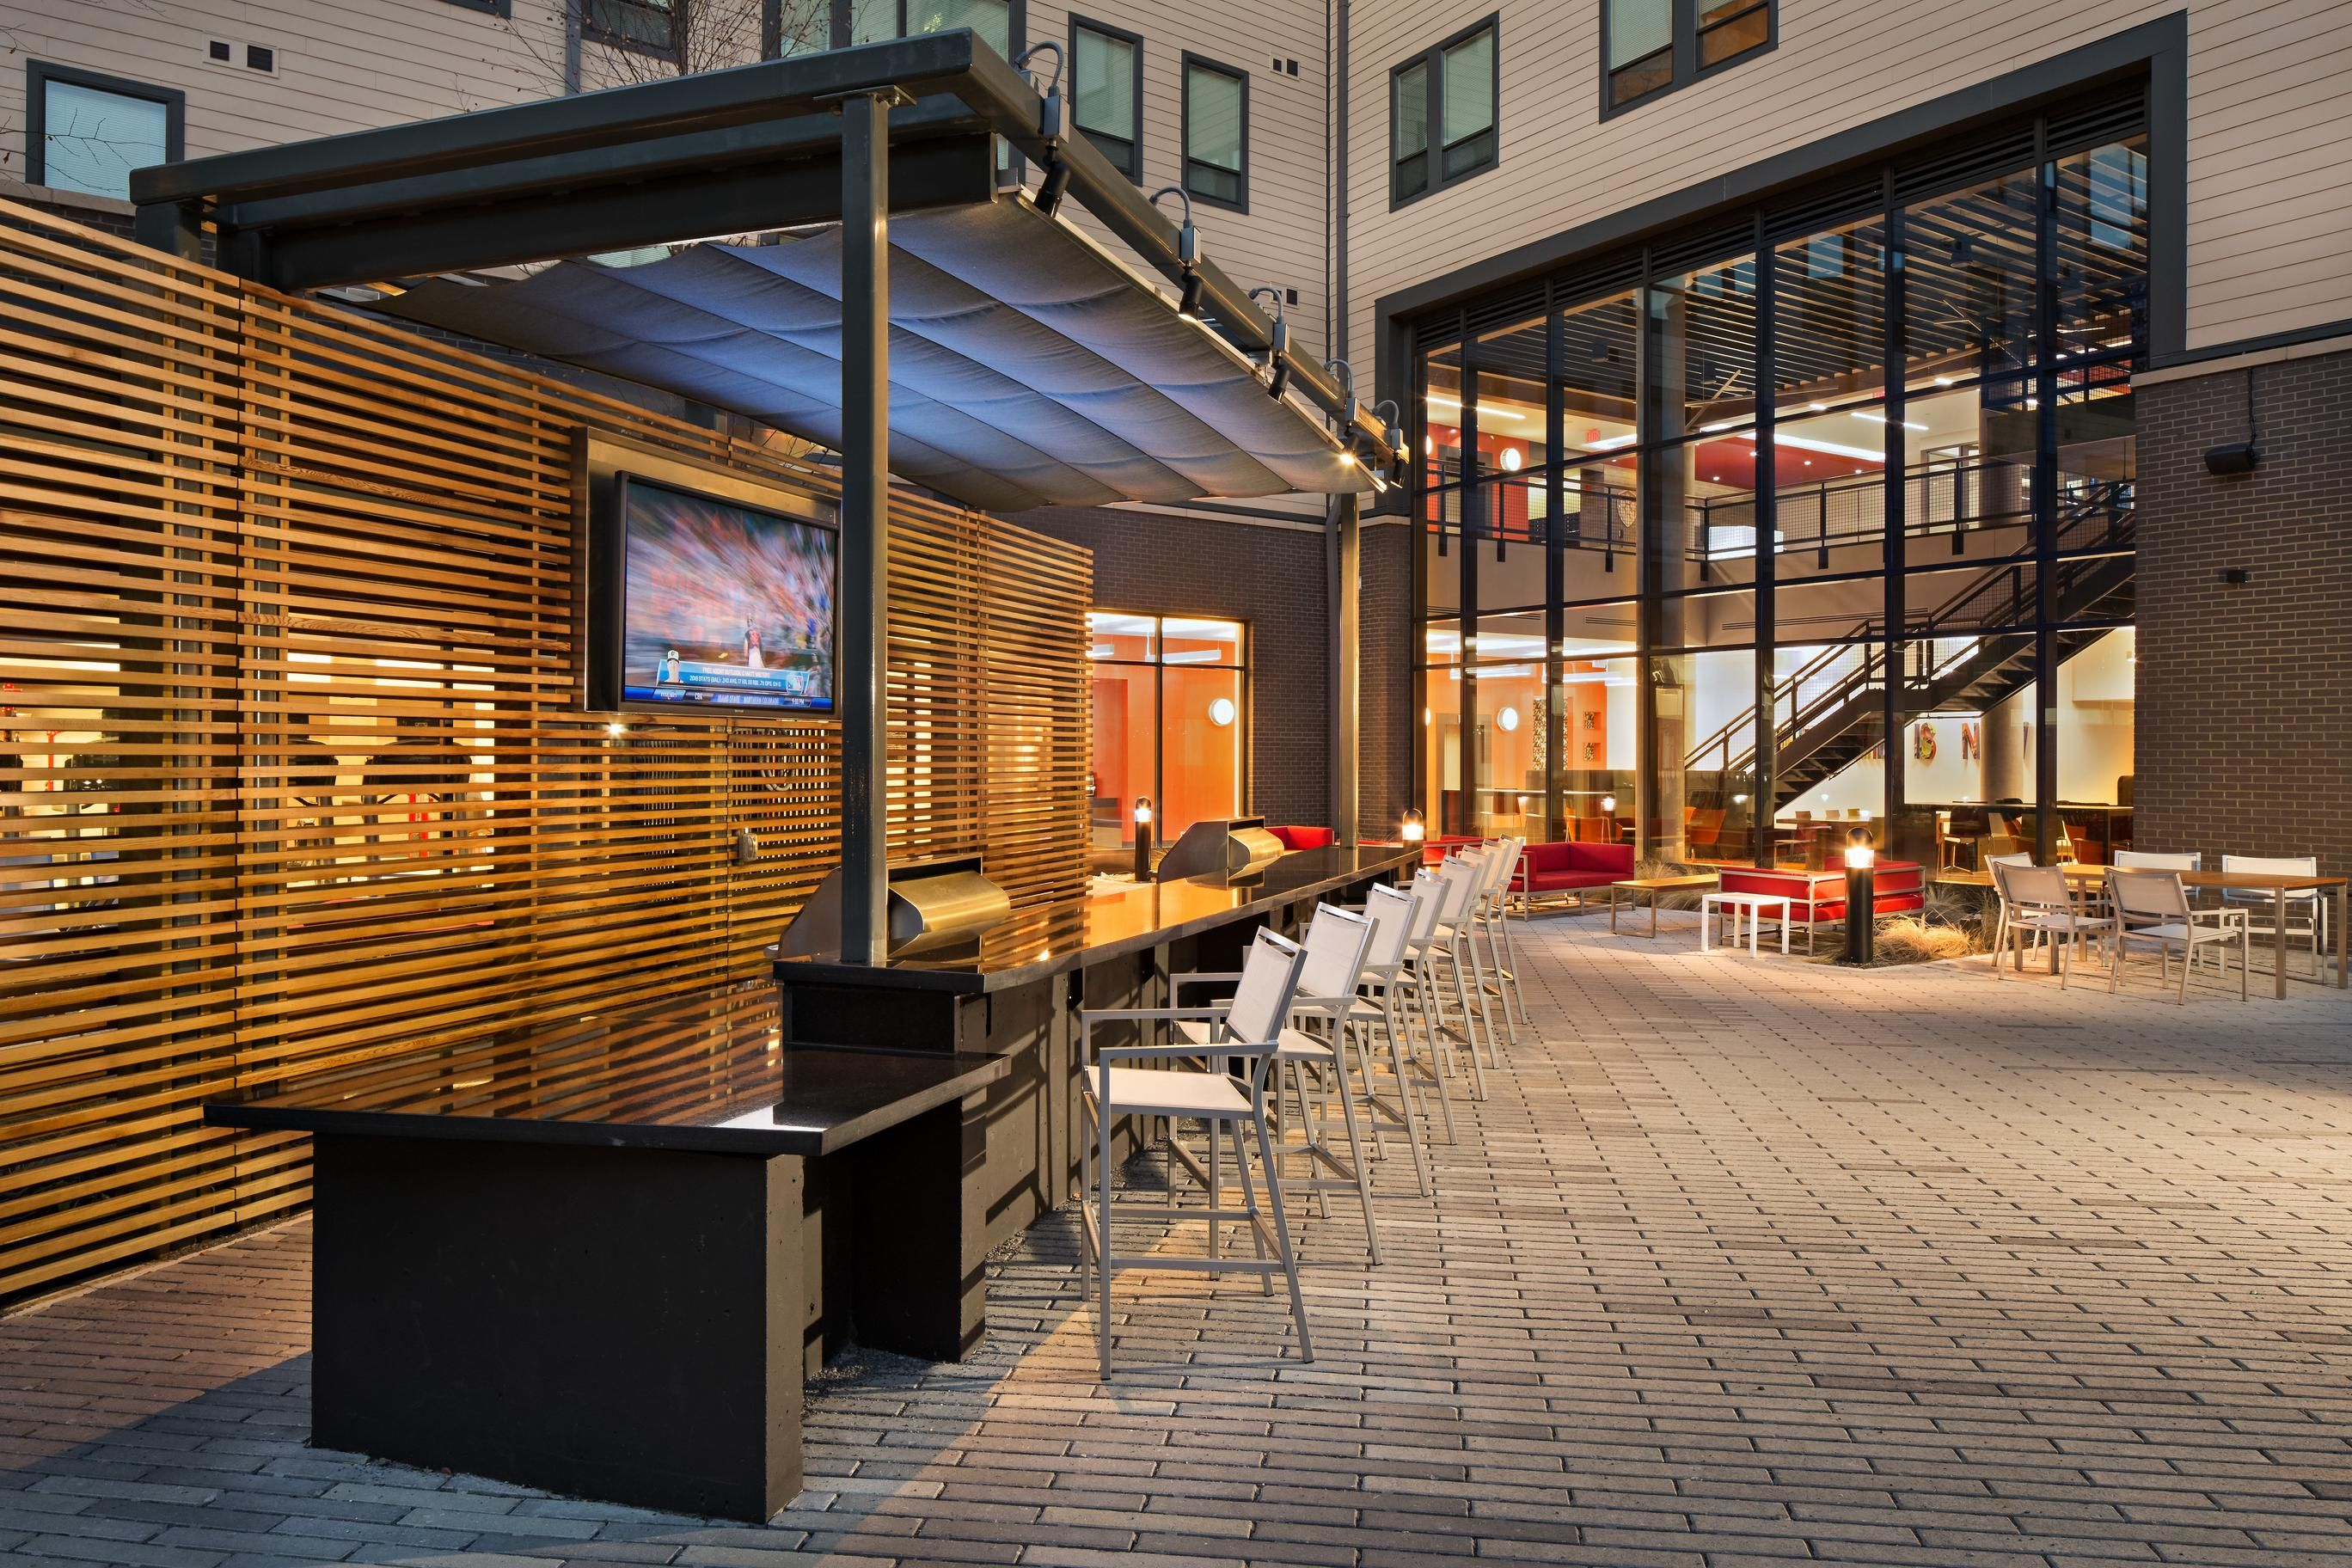 Terrapin Row courtyard in College Park Md